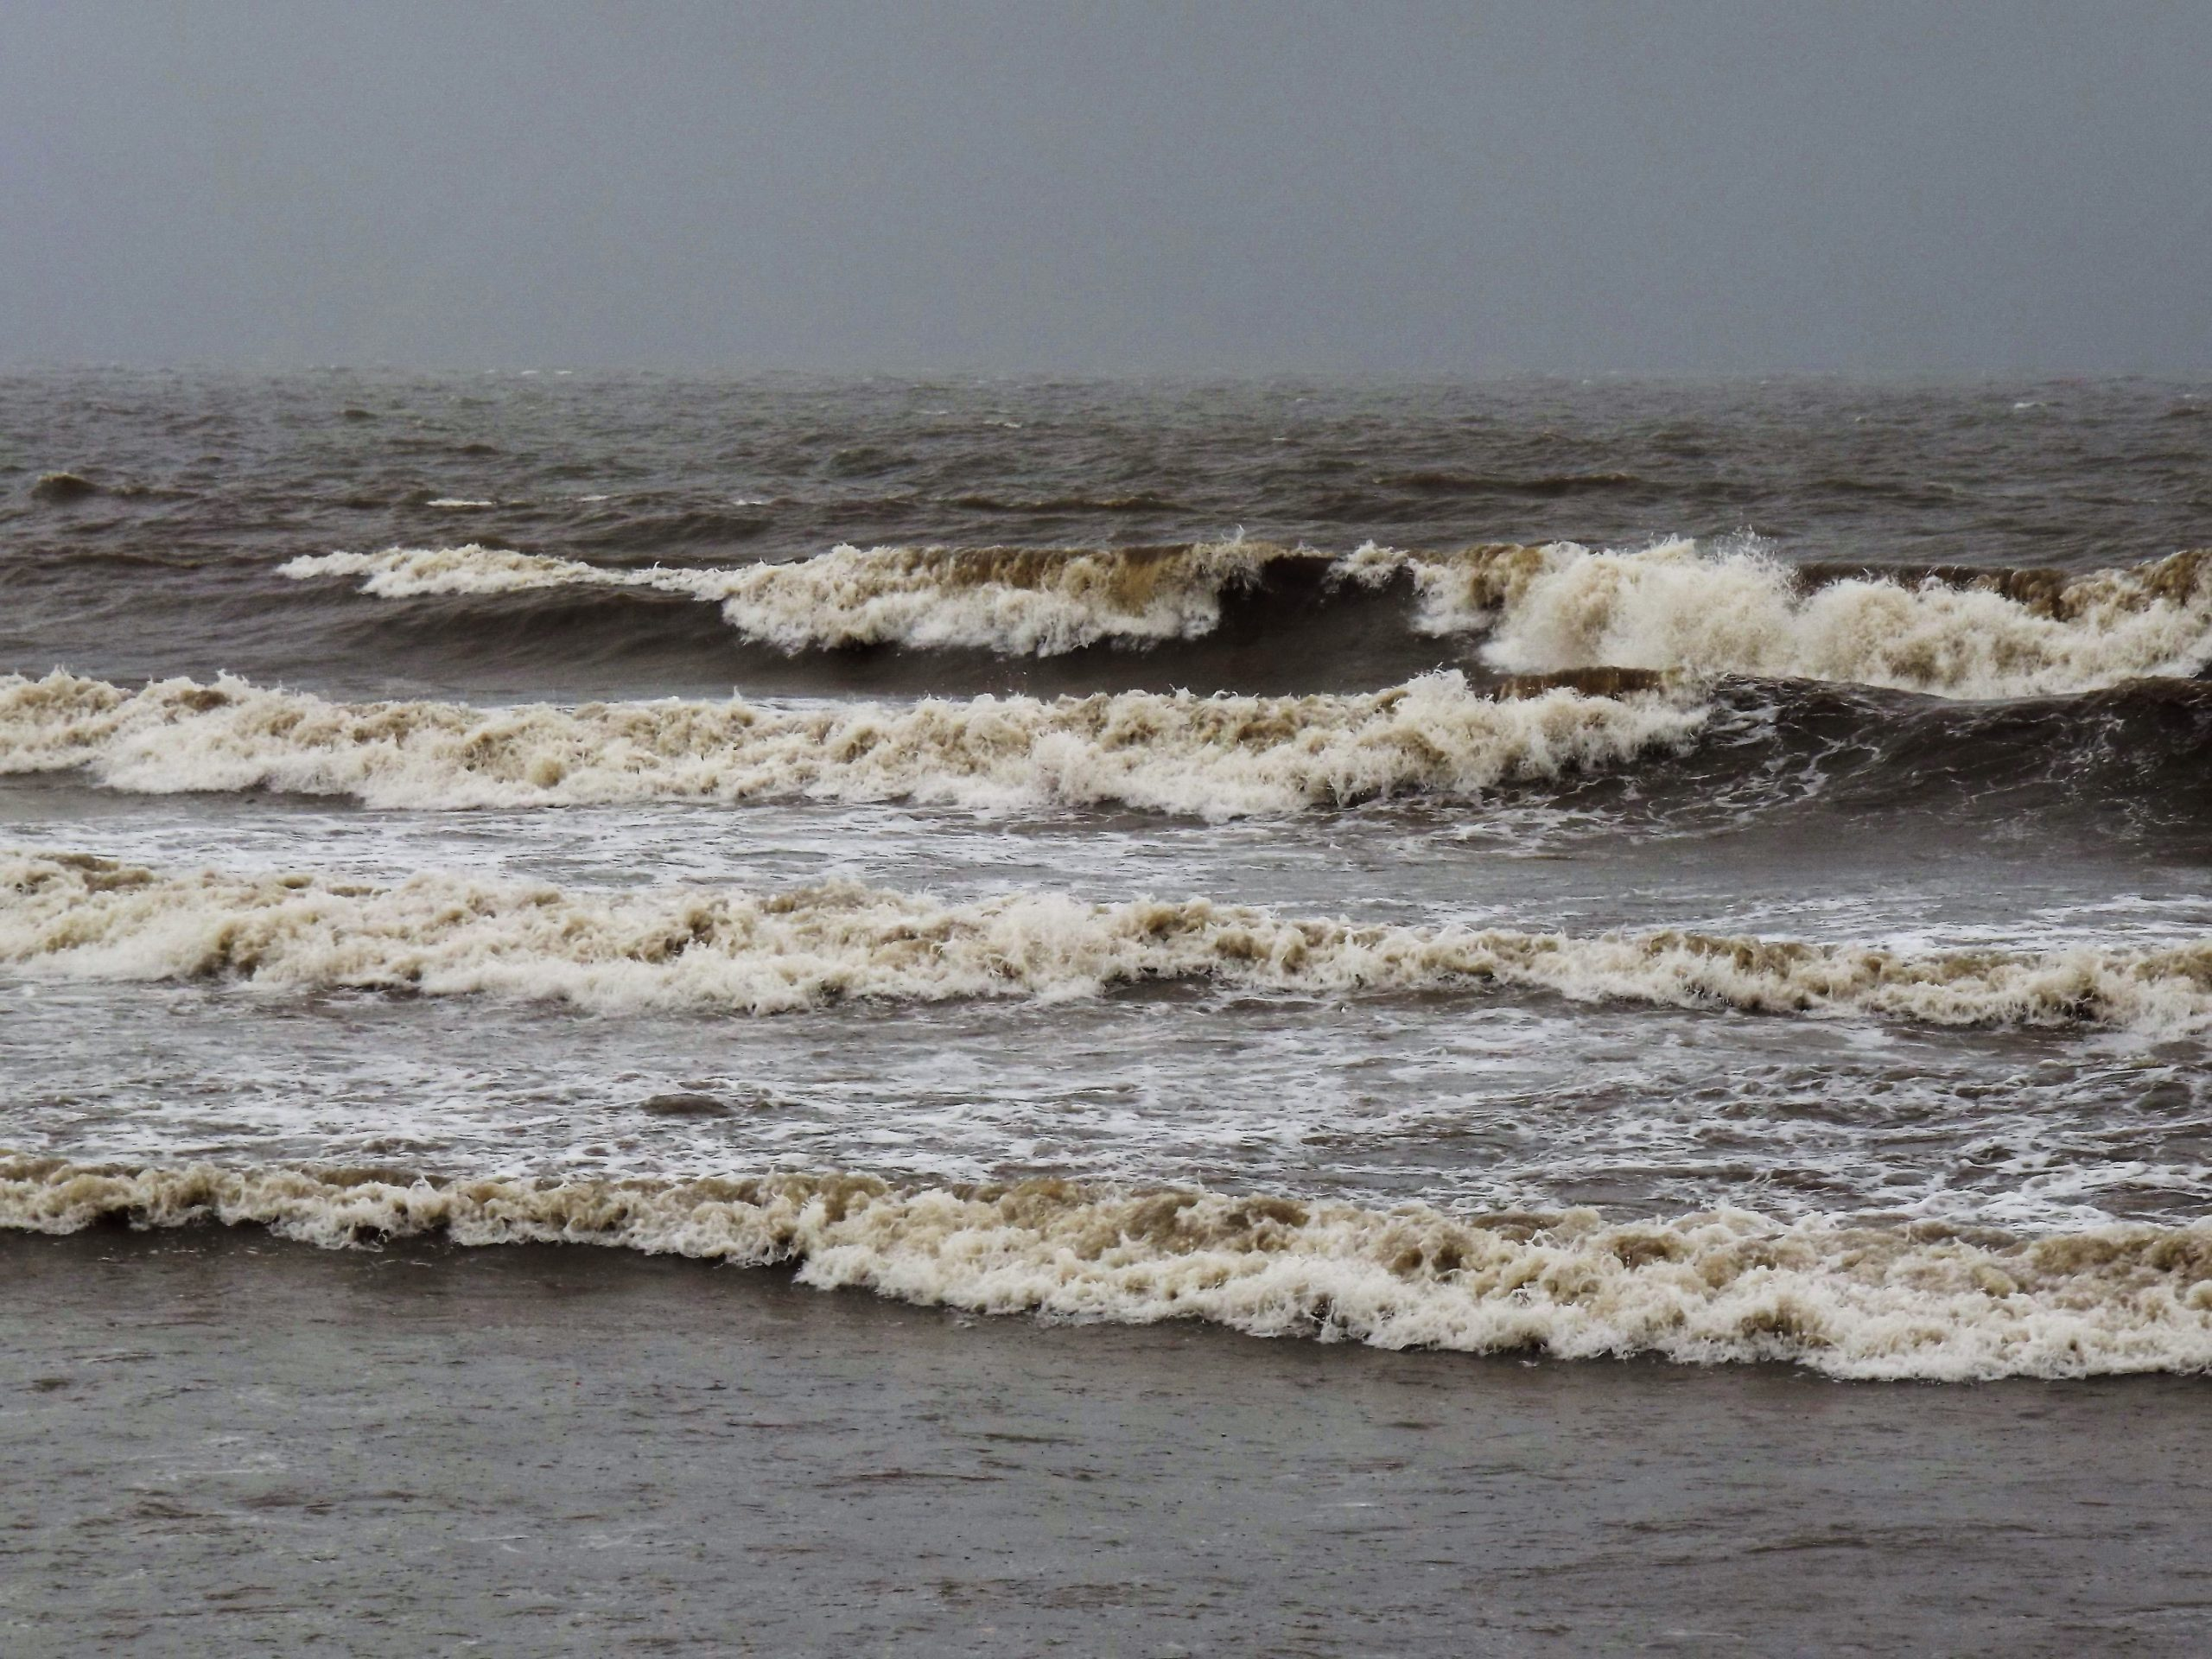 Sea waves at Juhu Mumbai